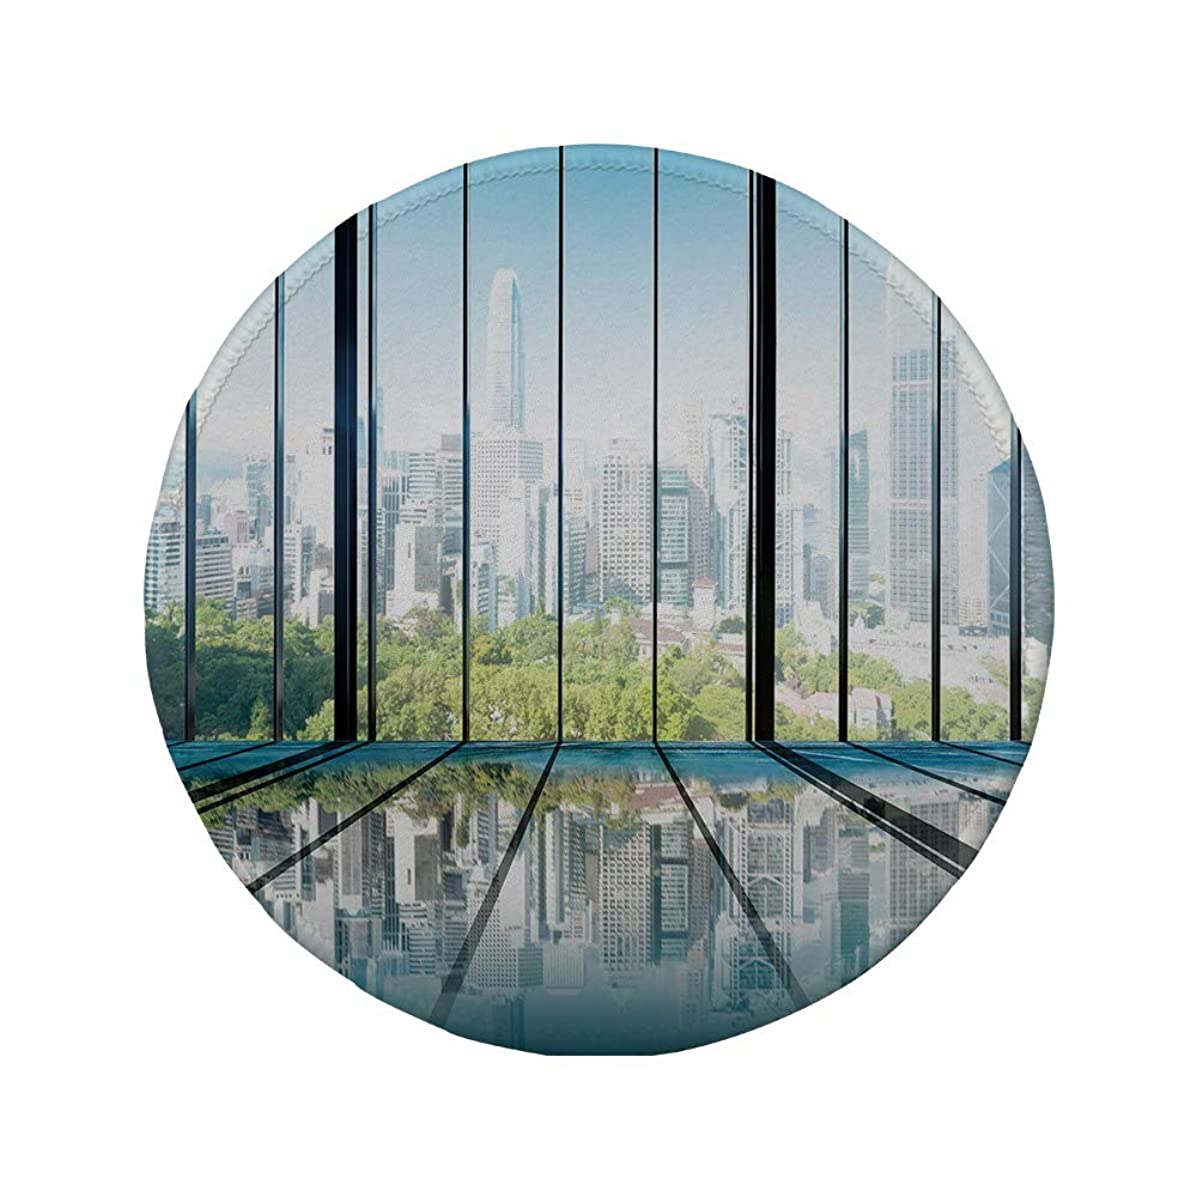 Non-Slip Rubber Round Mouse Pad,Landscape,Sunny Clear Sky Office Skyscrapers in Urban Metropolitan City Scenery,White Black and Green,11.8